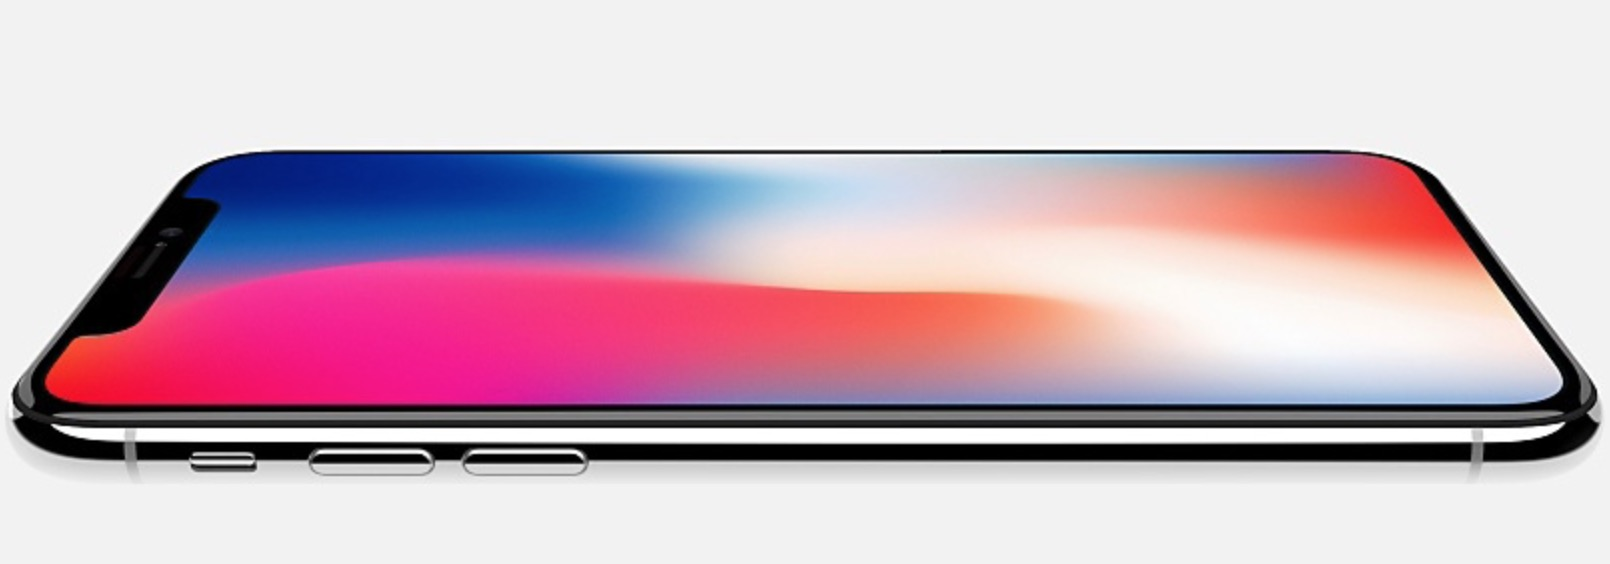 iPhone X design particolare